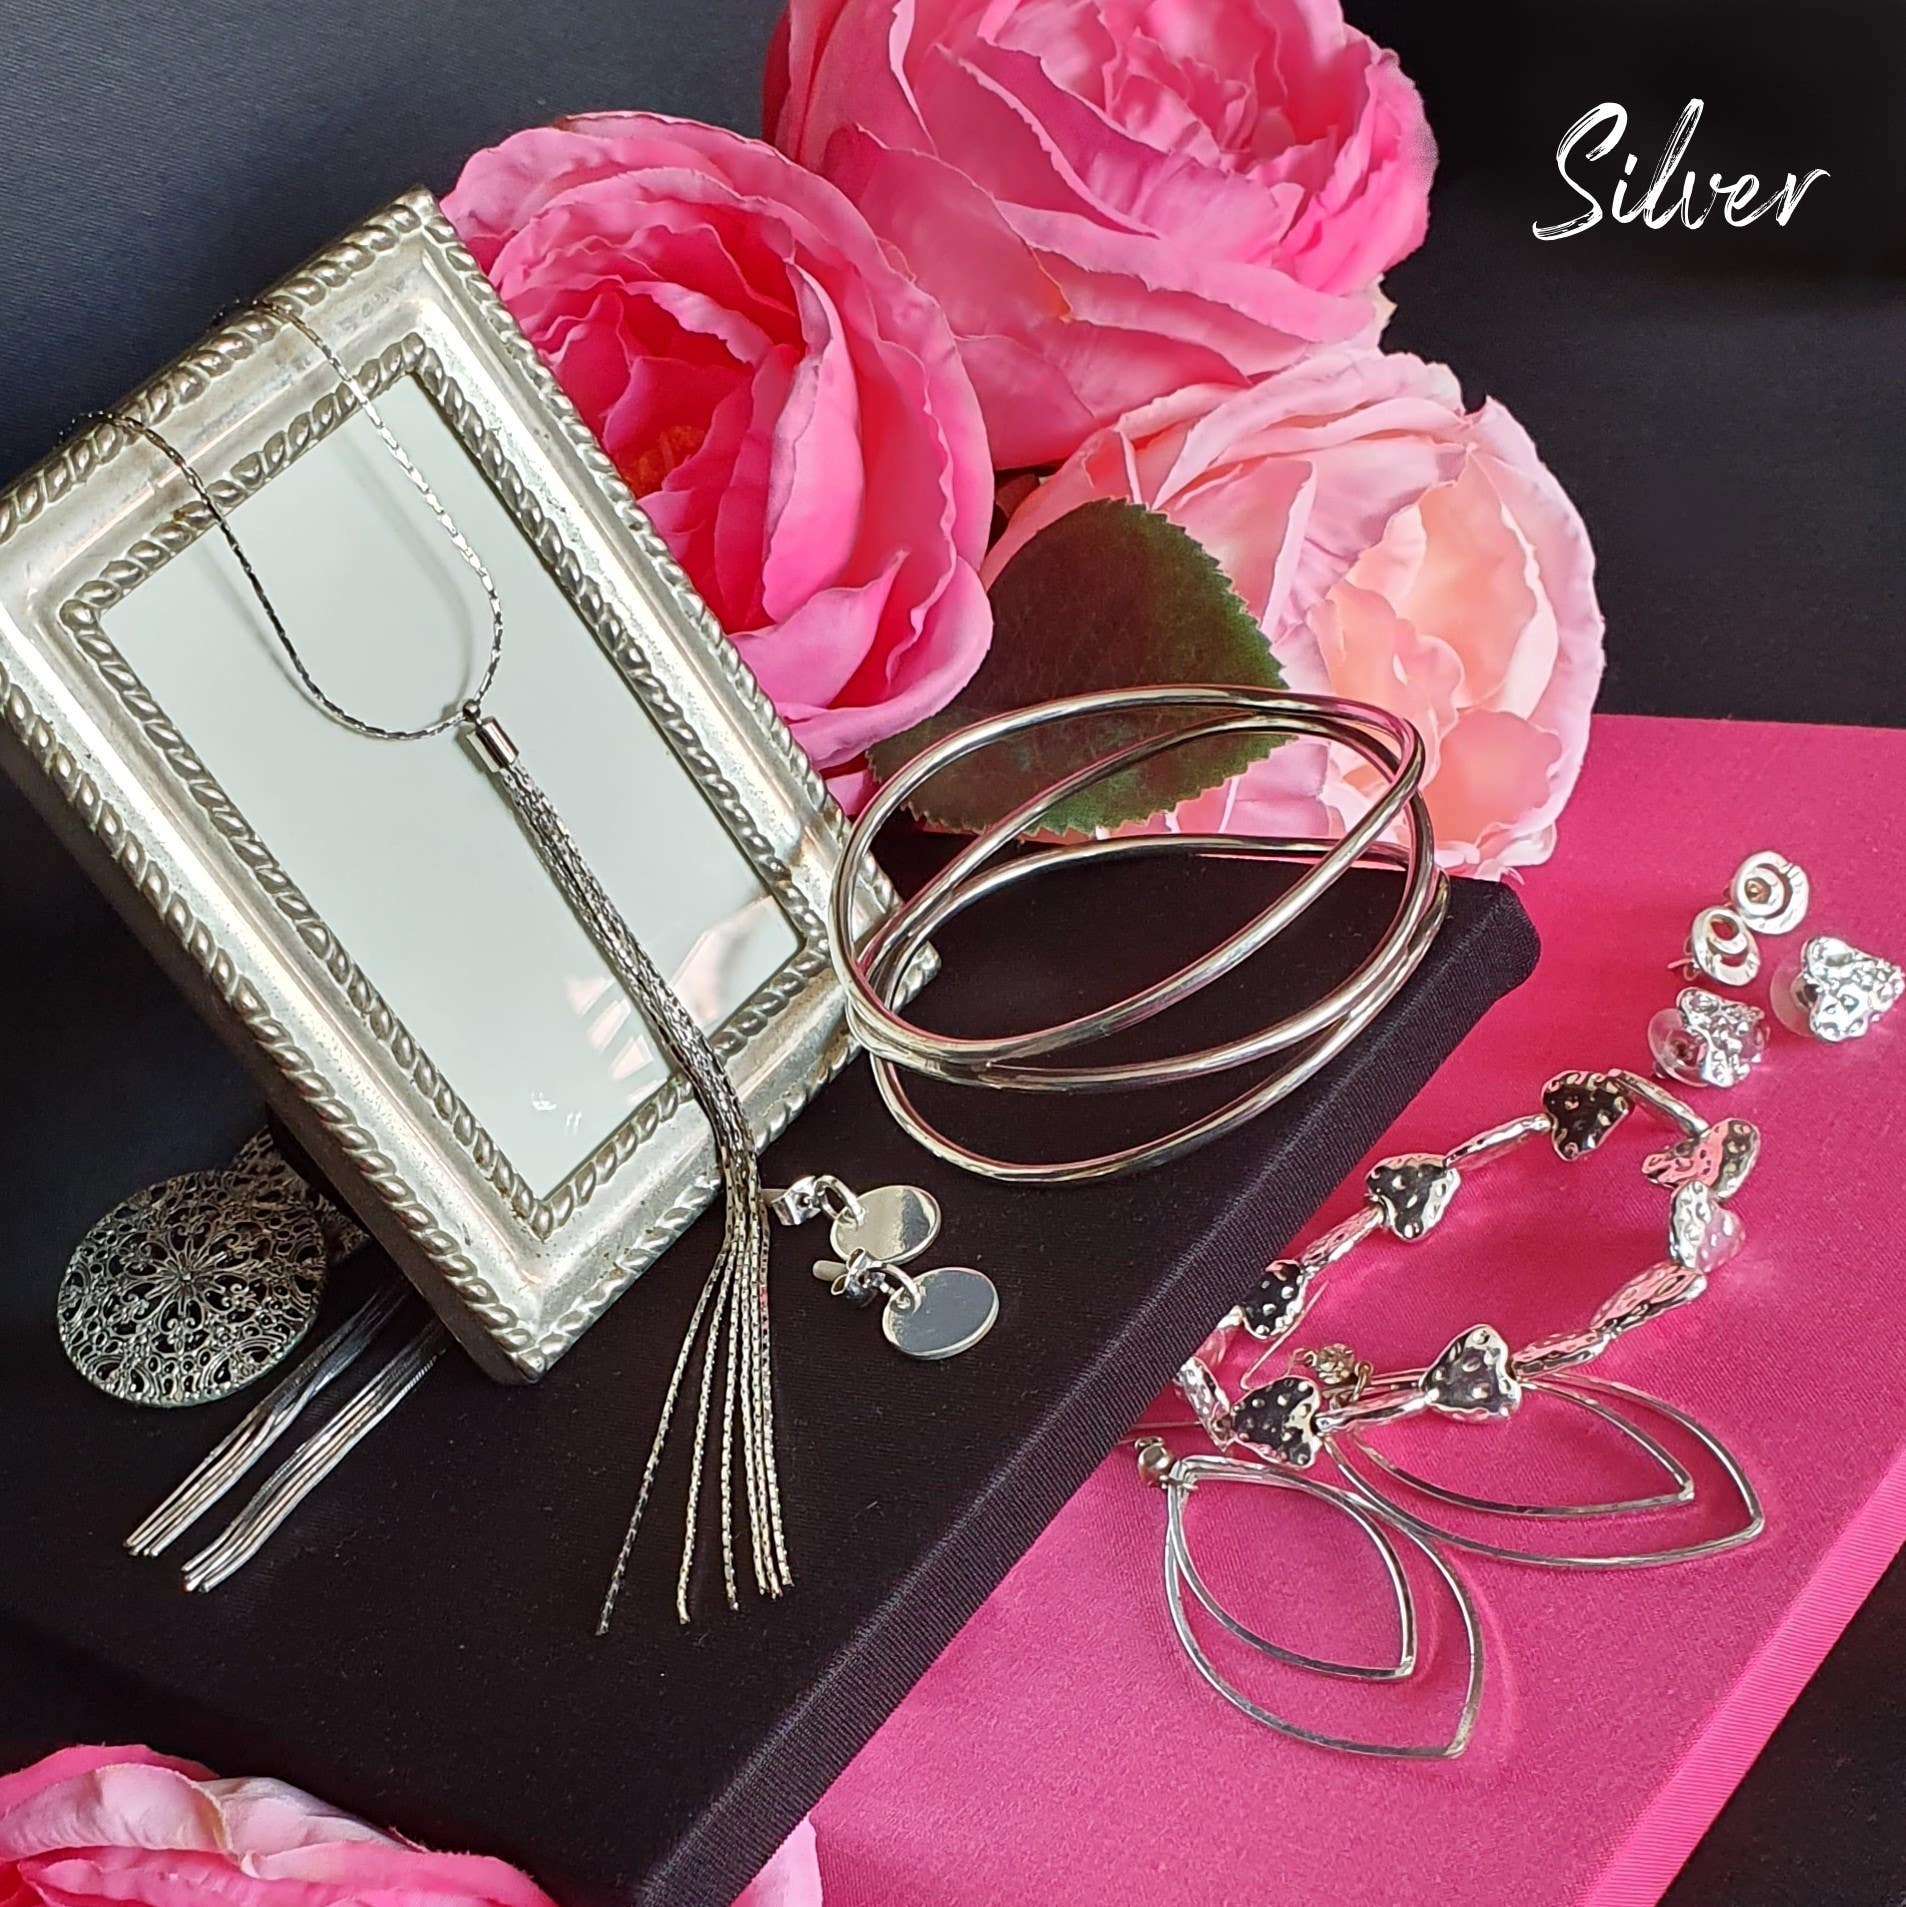 Group of of silver jewellery and gifting on a pink and black background